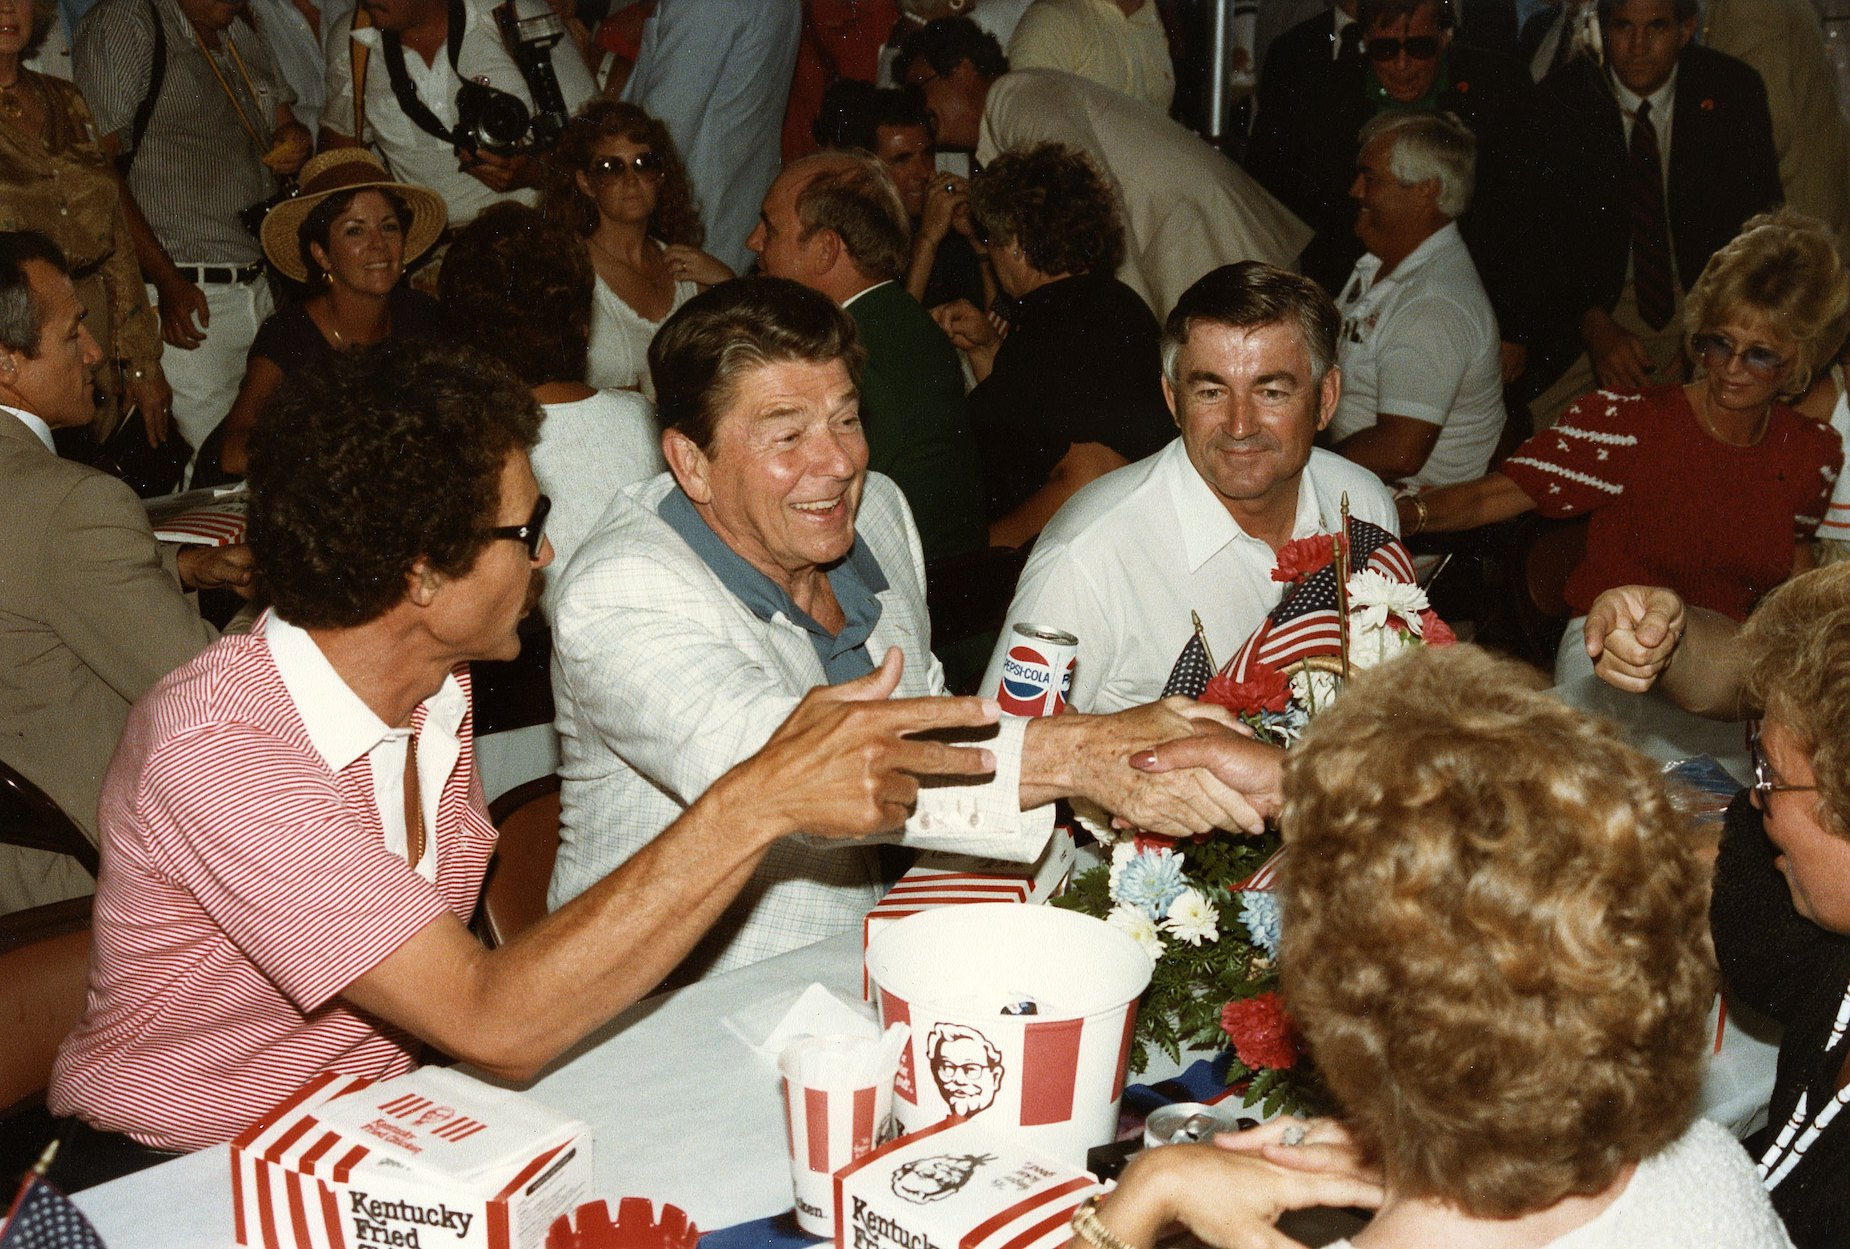 Richard Petty won his 200th NASCAR race on the Fourth of July then ate KFC with Ronald Reagan.